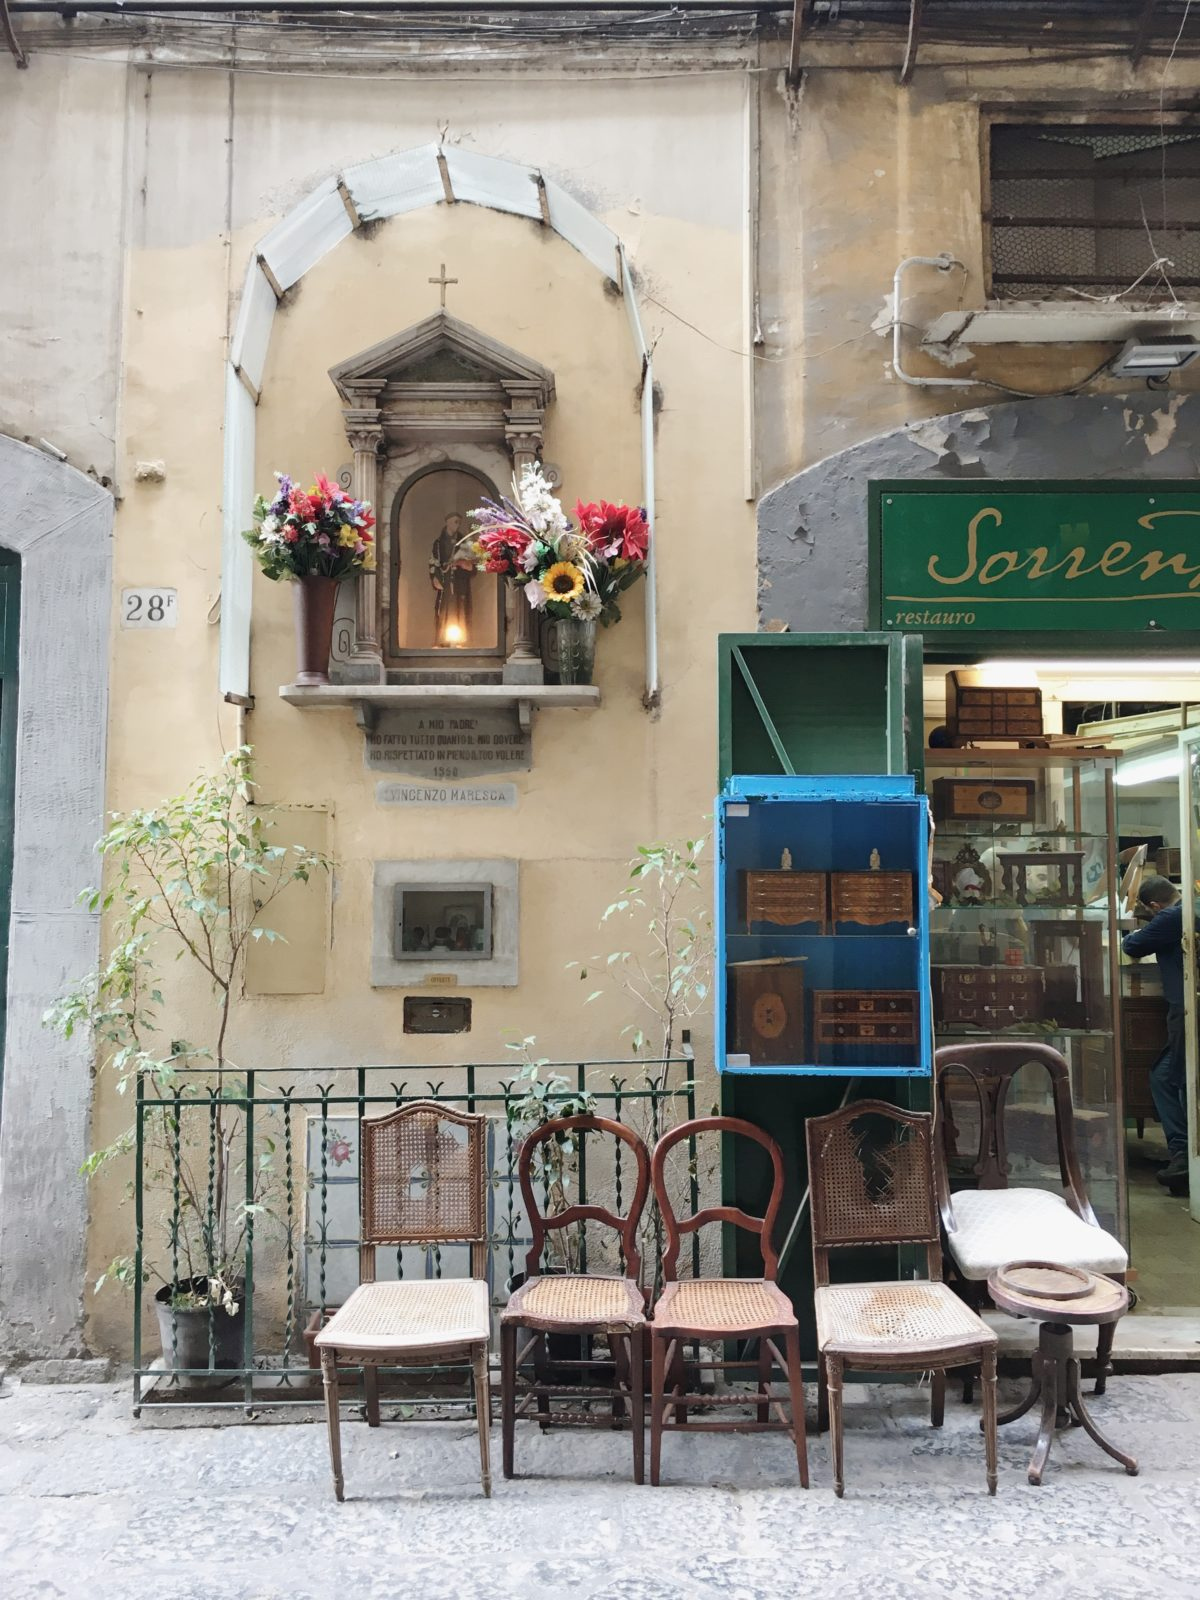 Antiques in Naples, Italy.